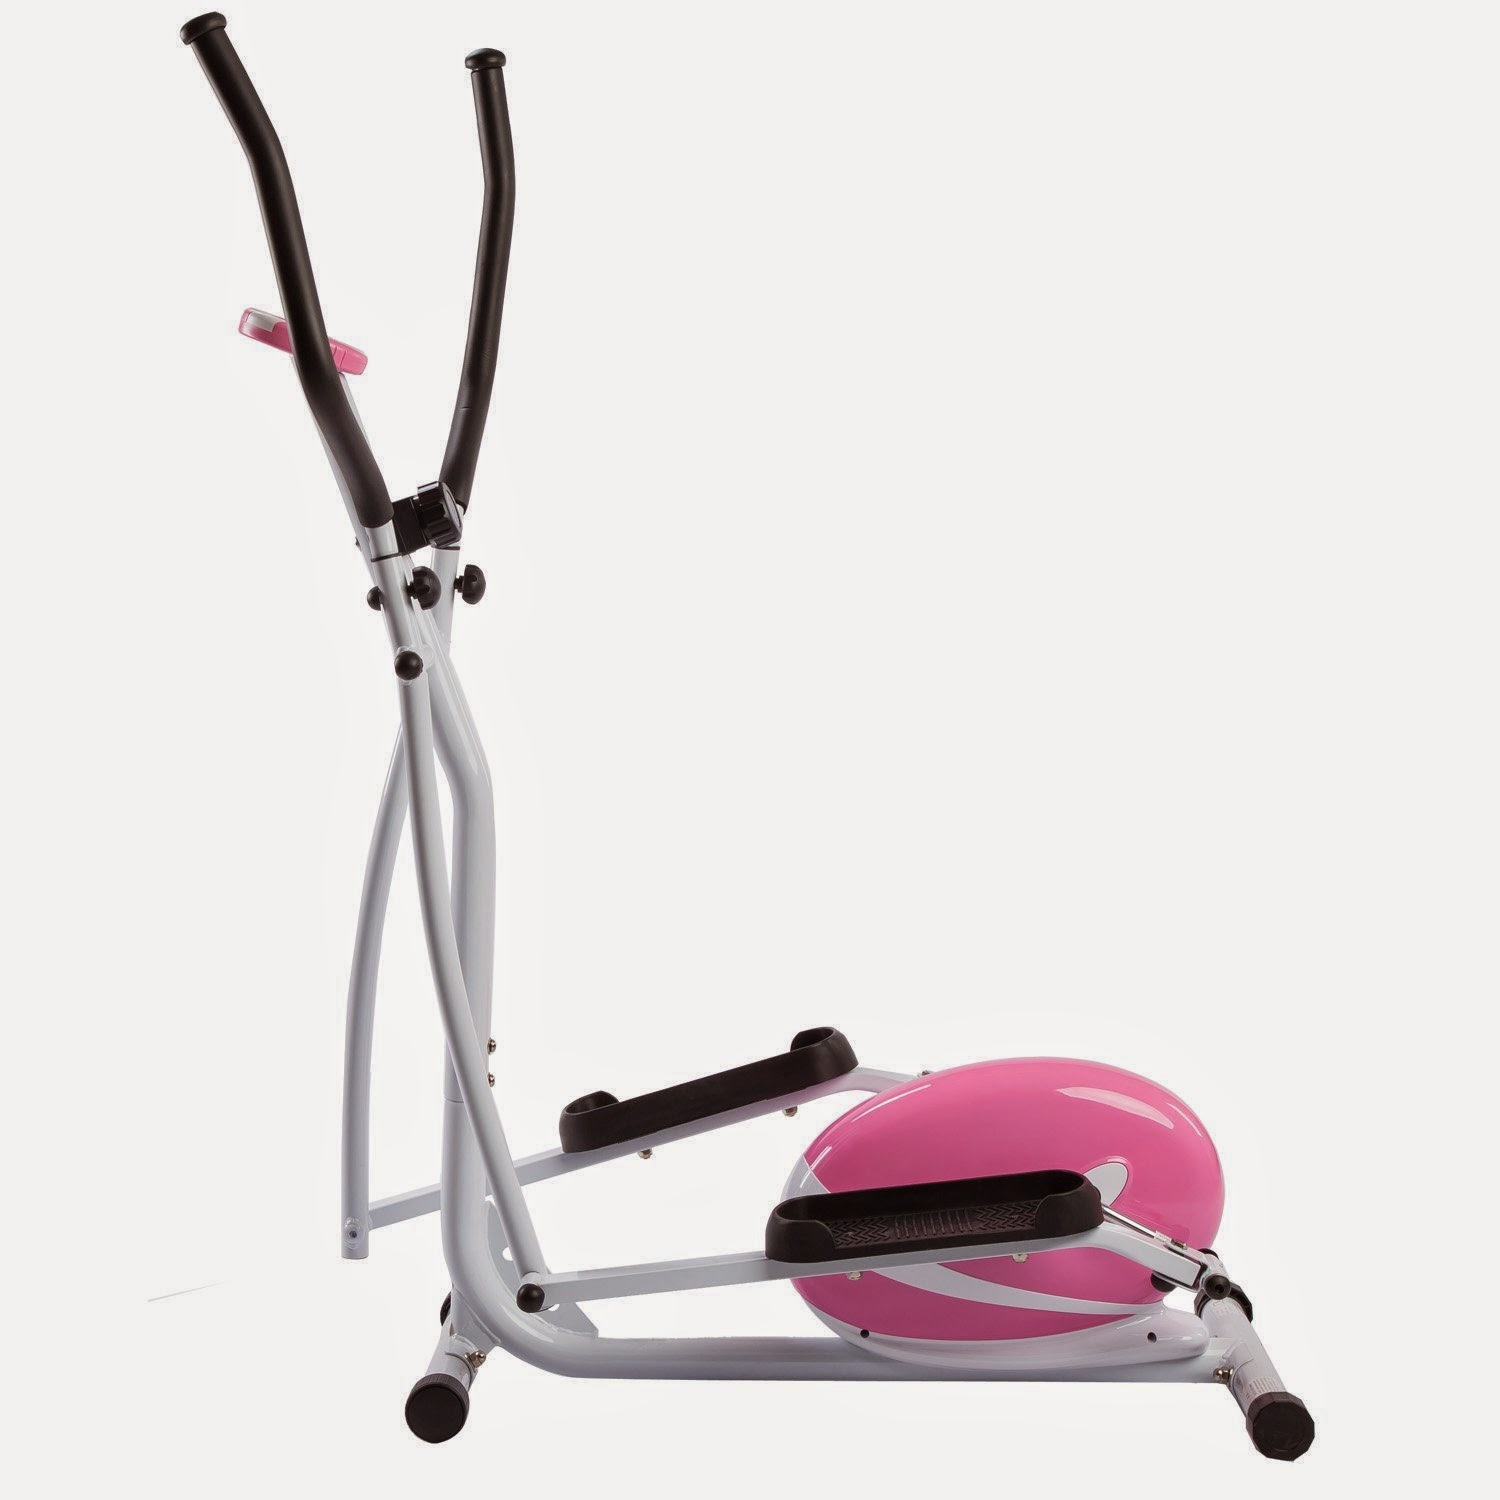 b4798d641 Health and Fitness Den  Pretty in Pink! Sunny Health   Fitness PINK ...